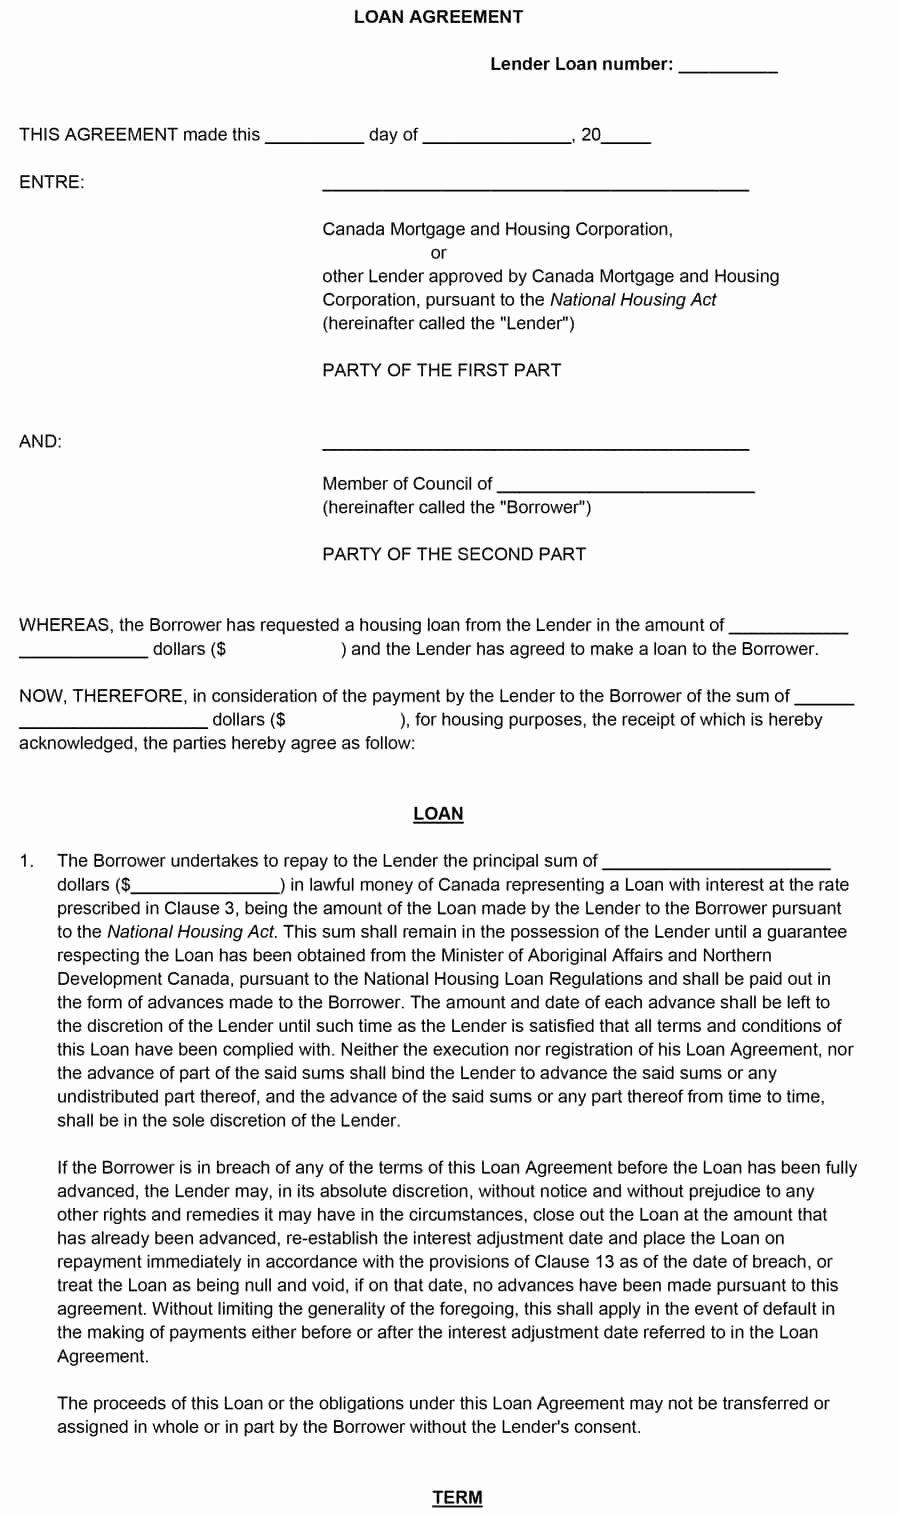 Free Loan Contract Template Unique 40 Free Loan Agreement Templates [word & Pdf] Template Lab